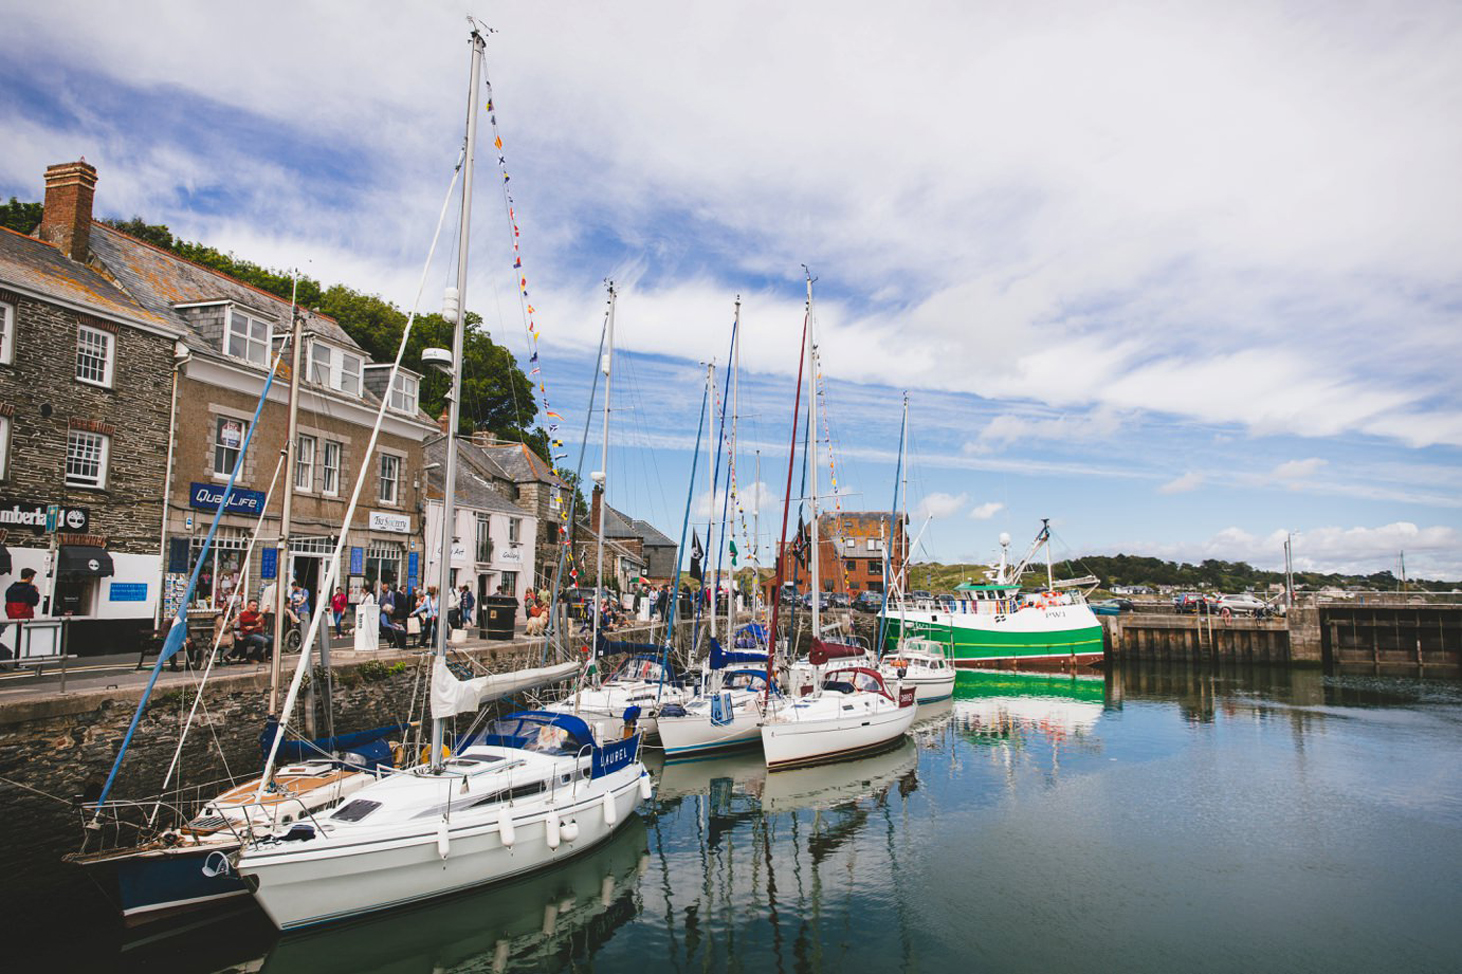 cornwall padstow st ives travel photography saran ann wright 000